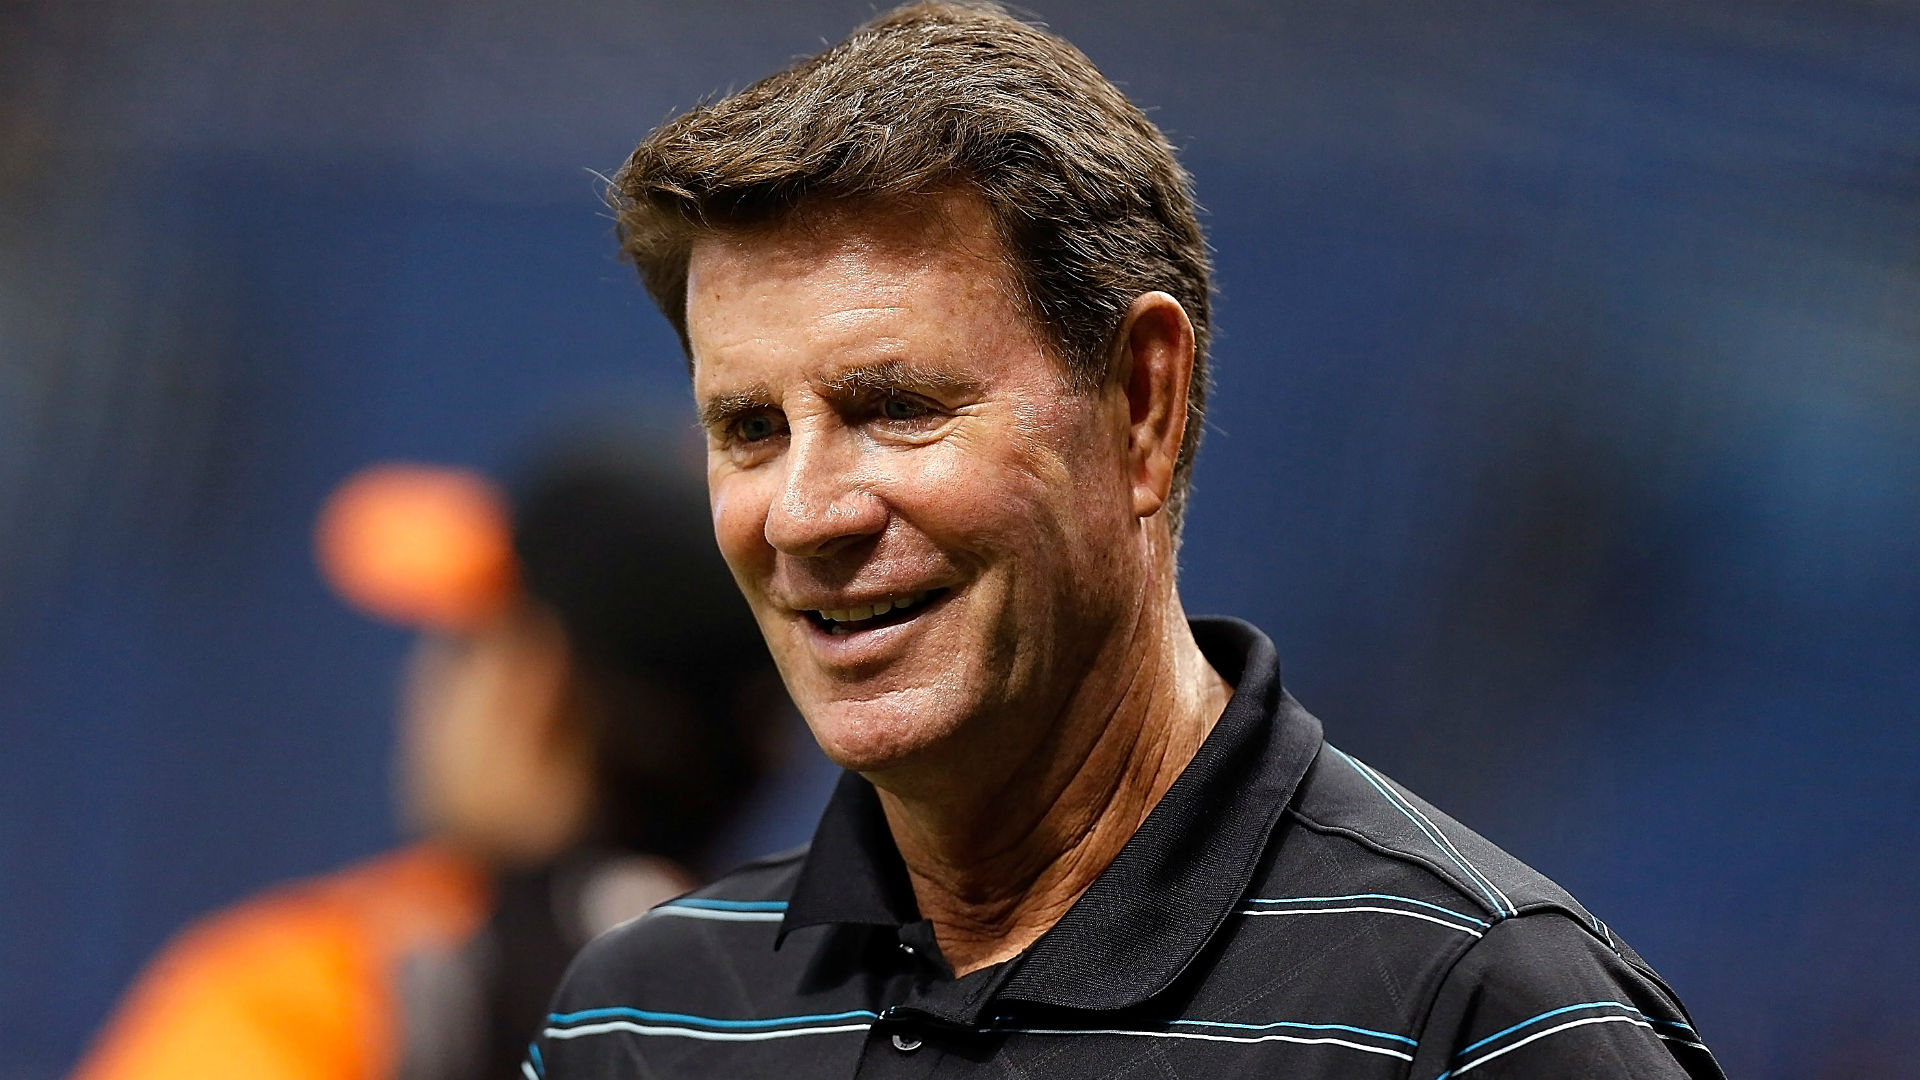 Jim Palmer fighting rare infection